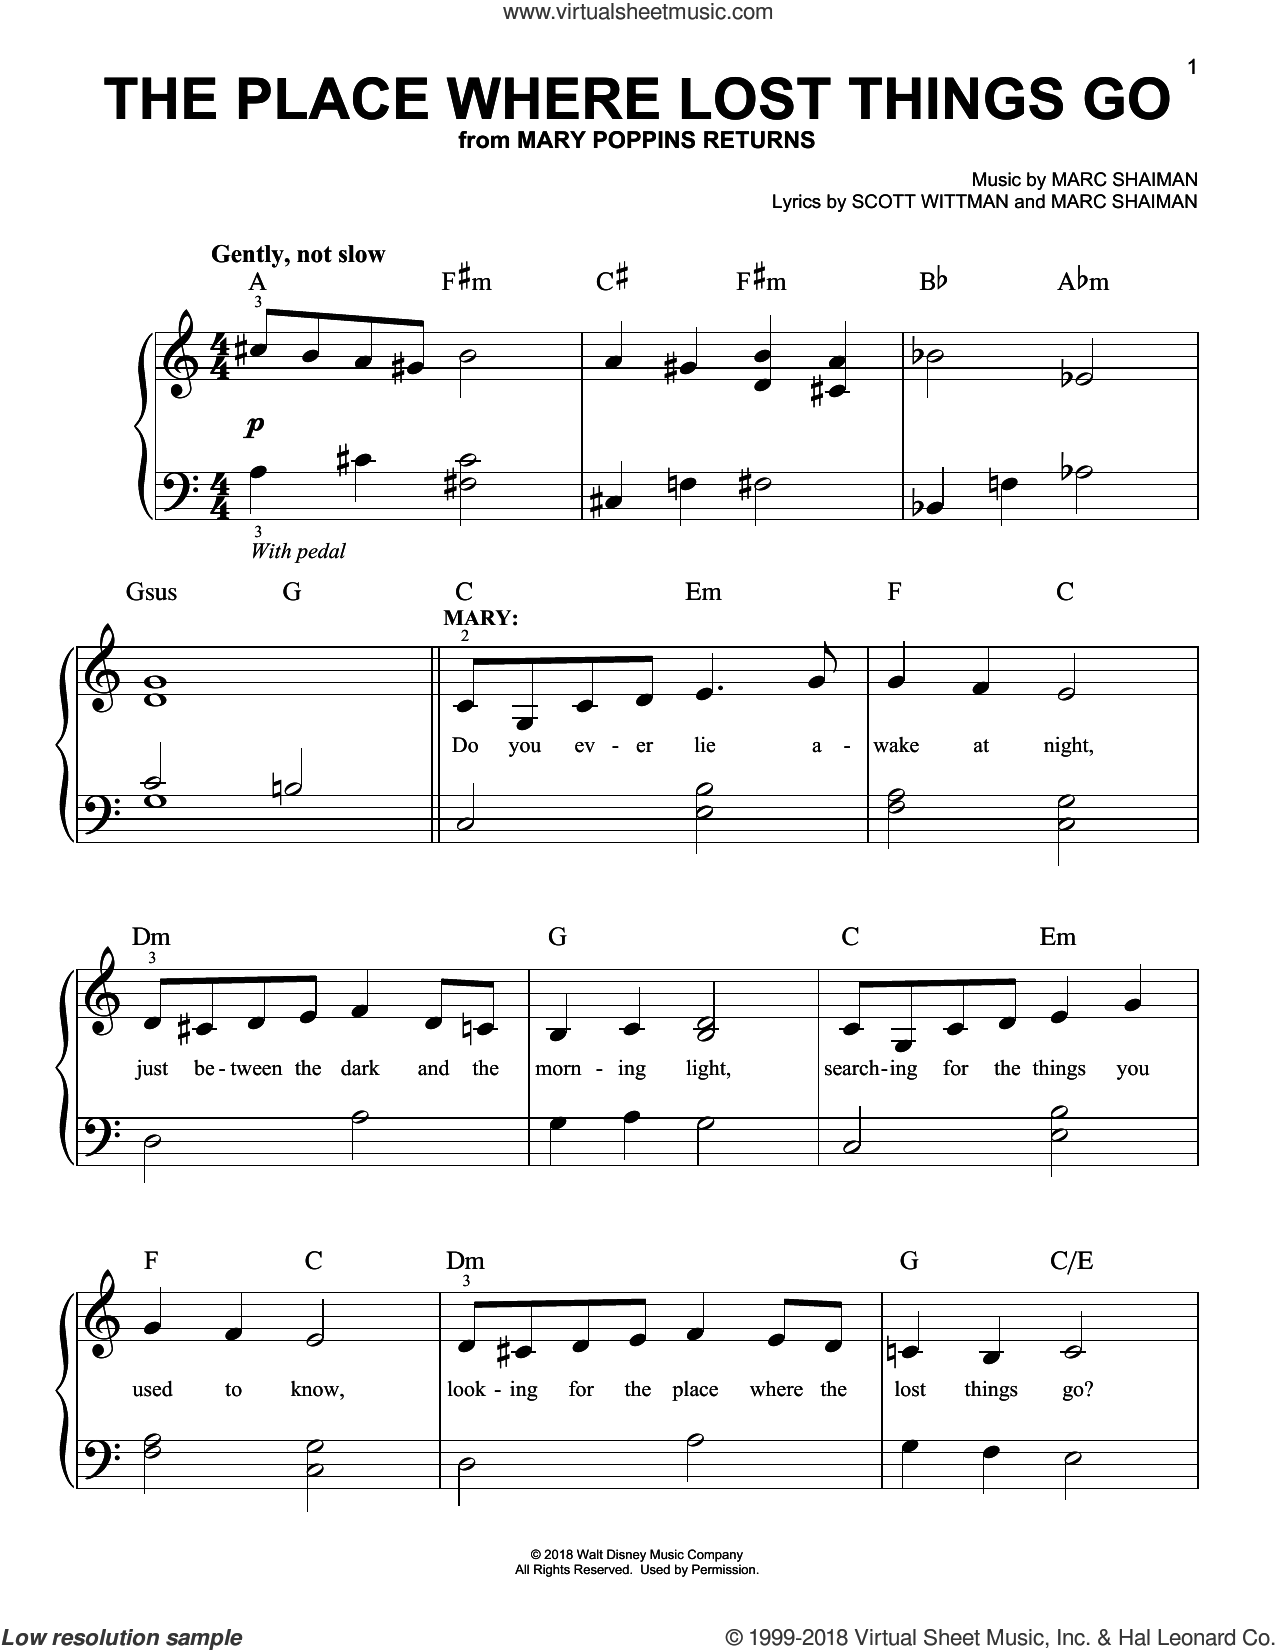 The Place Where Lost Things Go (from Mary Poppins Returns) sheet music for piano solo by Emily Blunt, Marc Shaiman and Scott Wittman, easy skill level